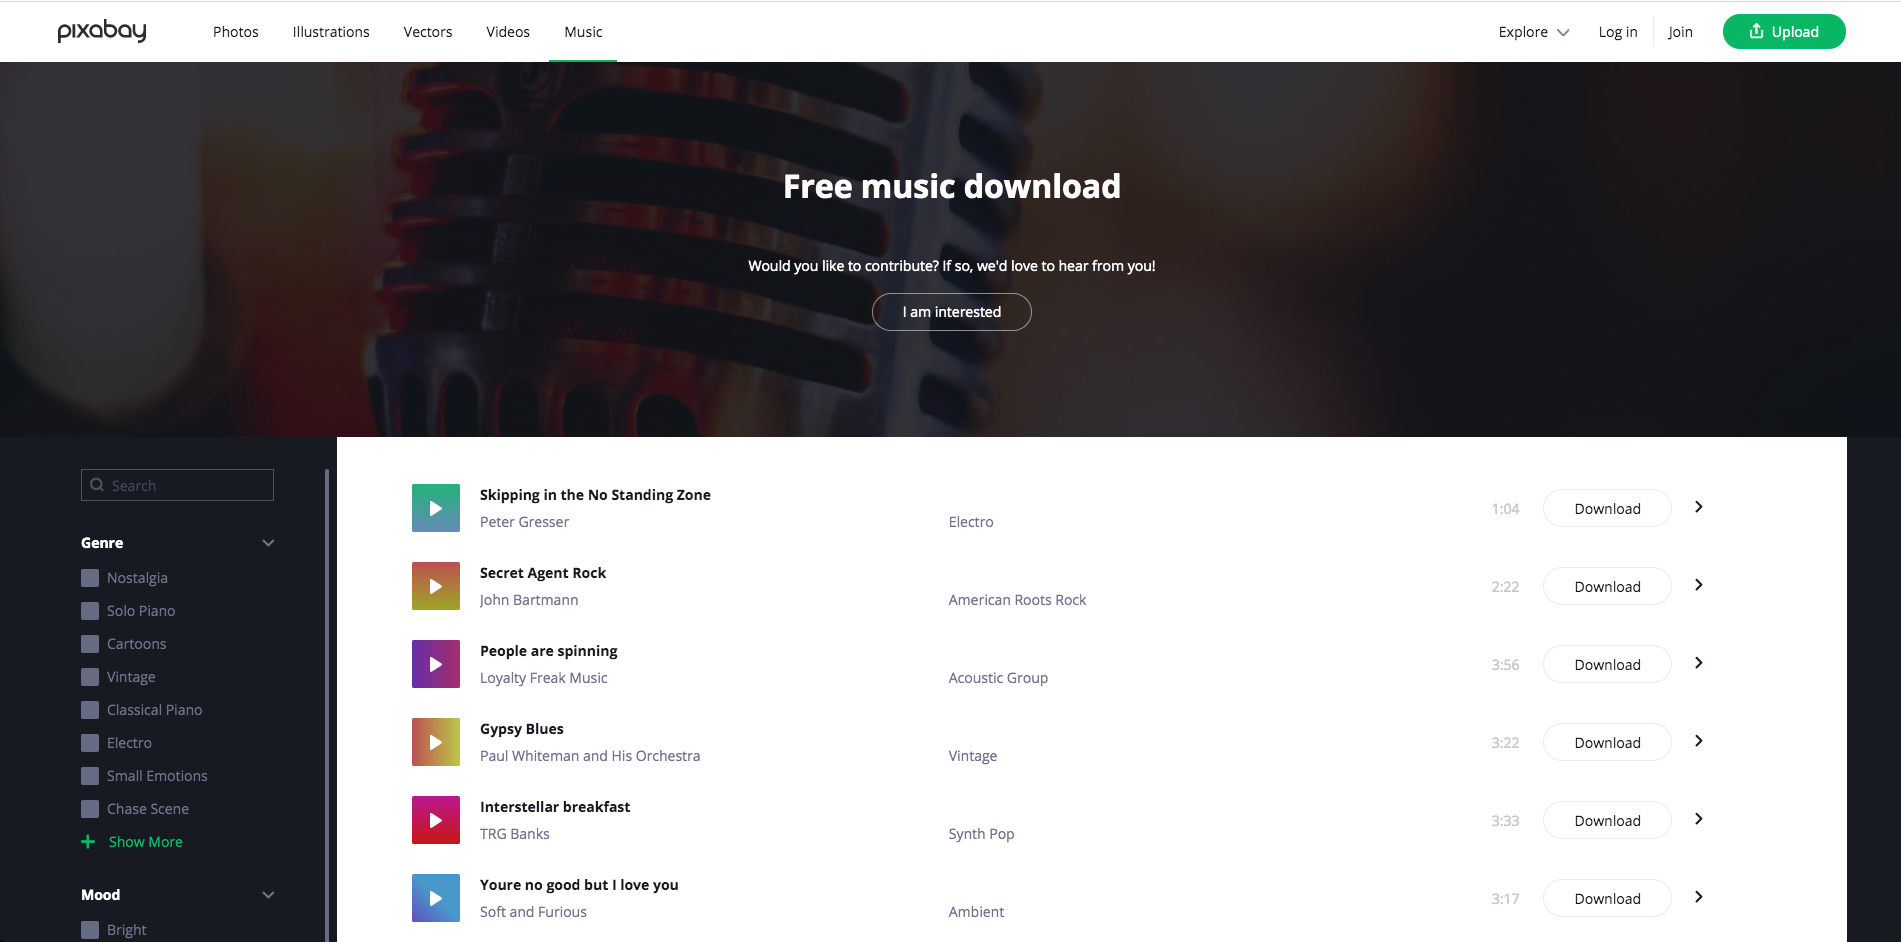 Pixabay Music offers free background music for video